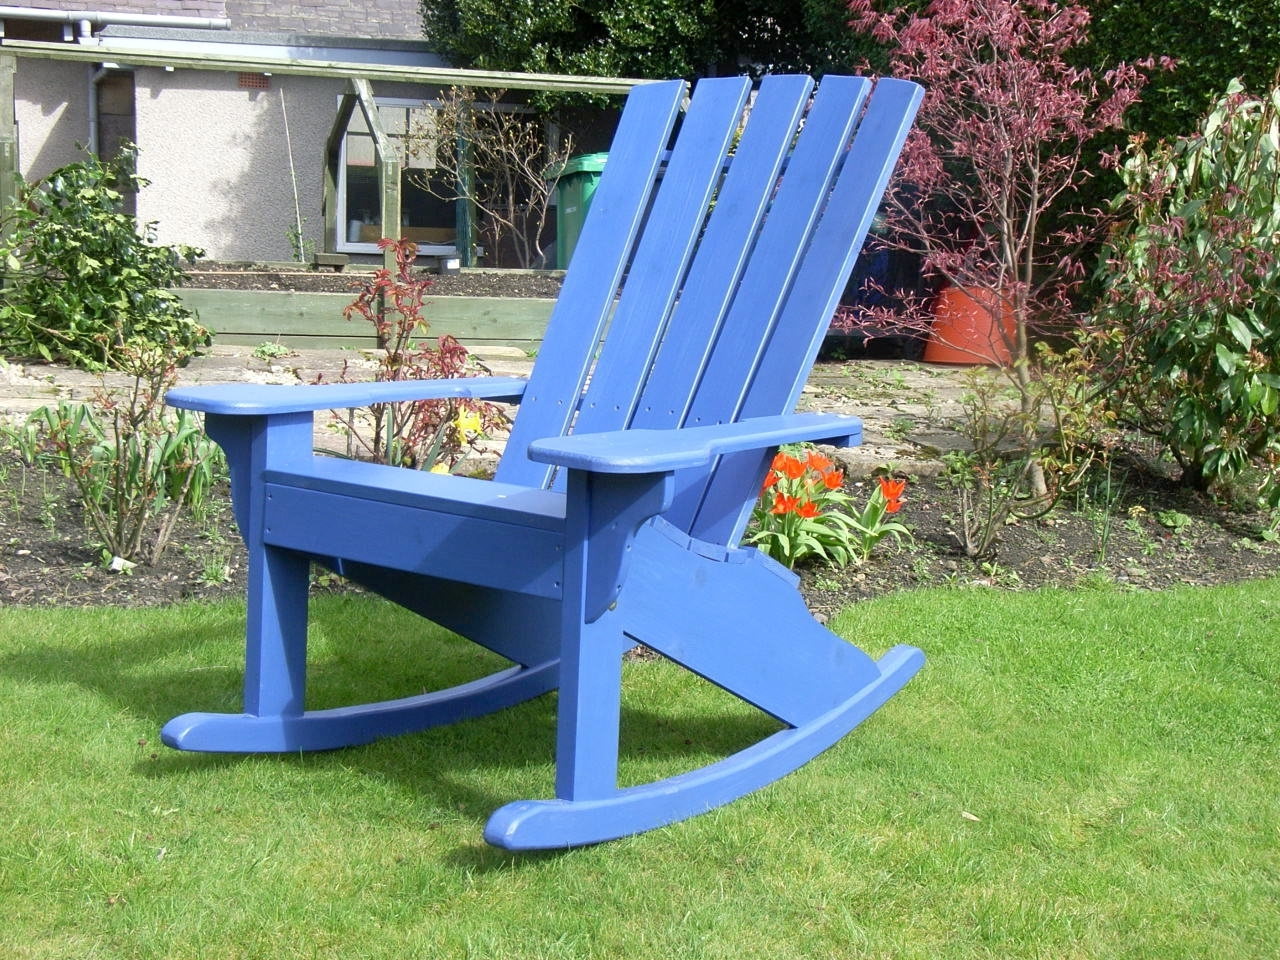 Rocking Chairs For Garden Within Fashionable The Adirondack Rocker Chair – Sunshine Chairs (View 16 of 20)